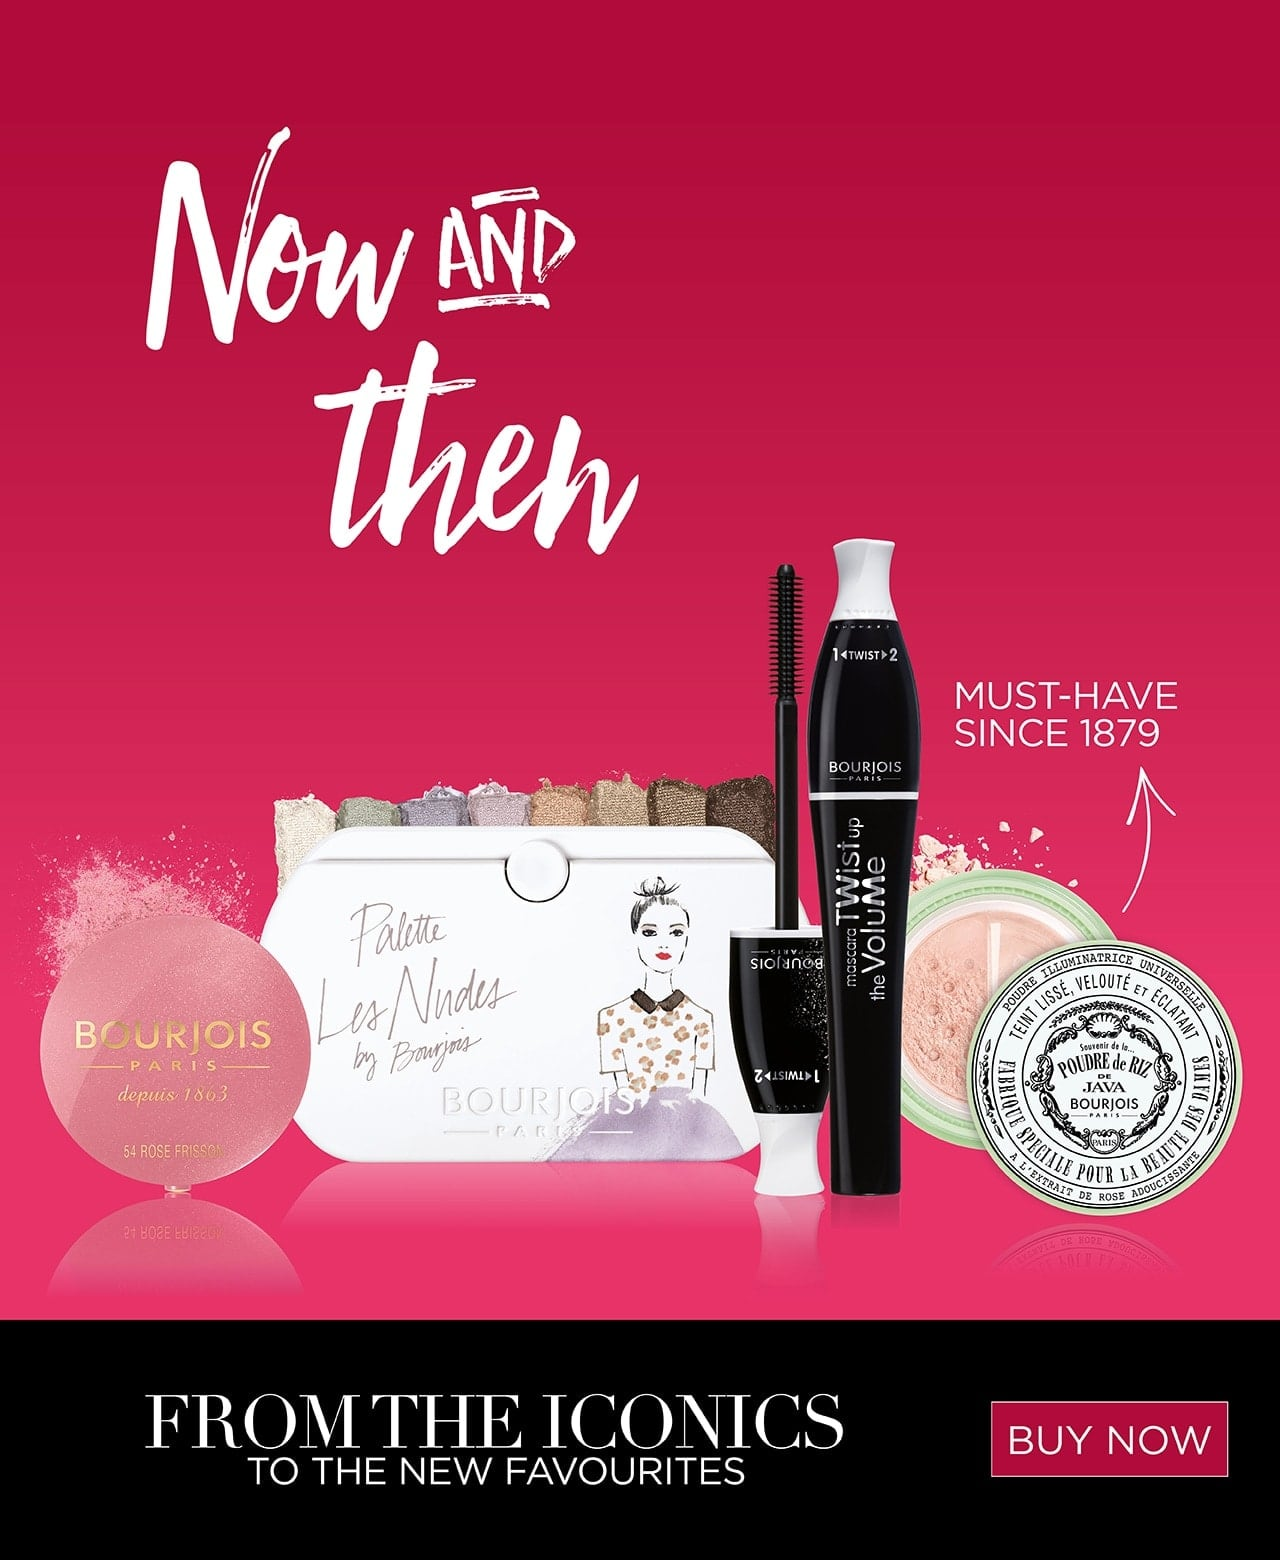 Bourjois Now and then. From the iconics to the new favourites